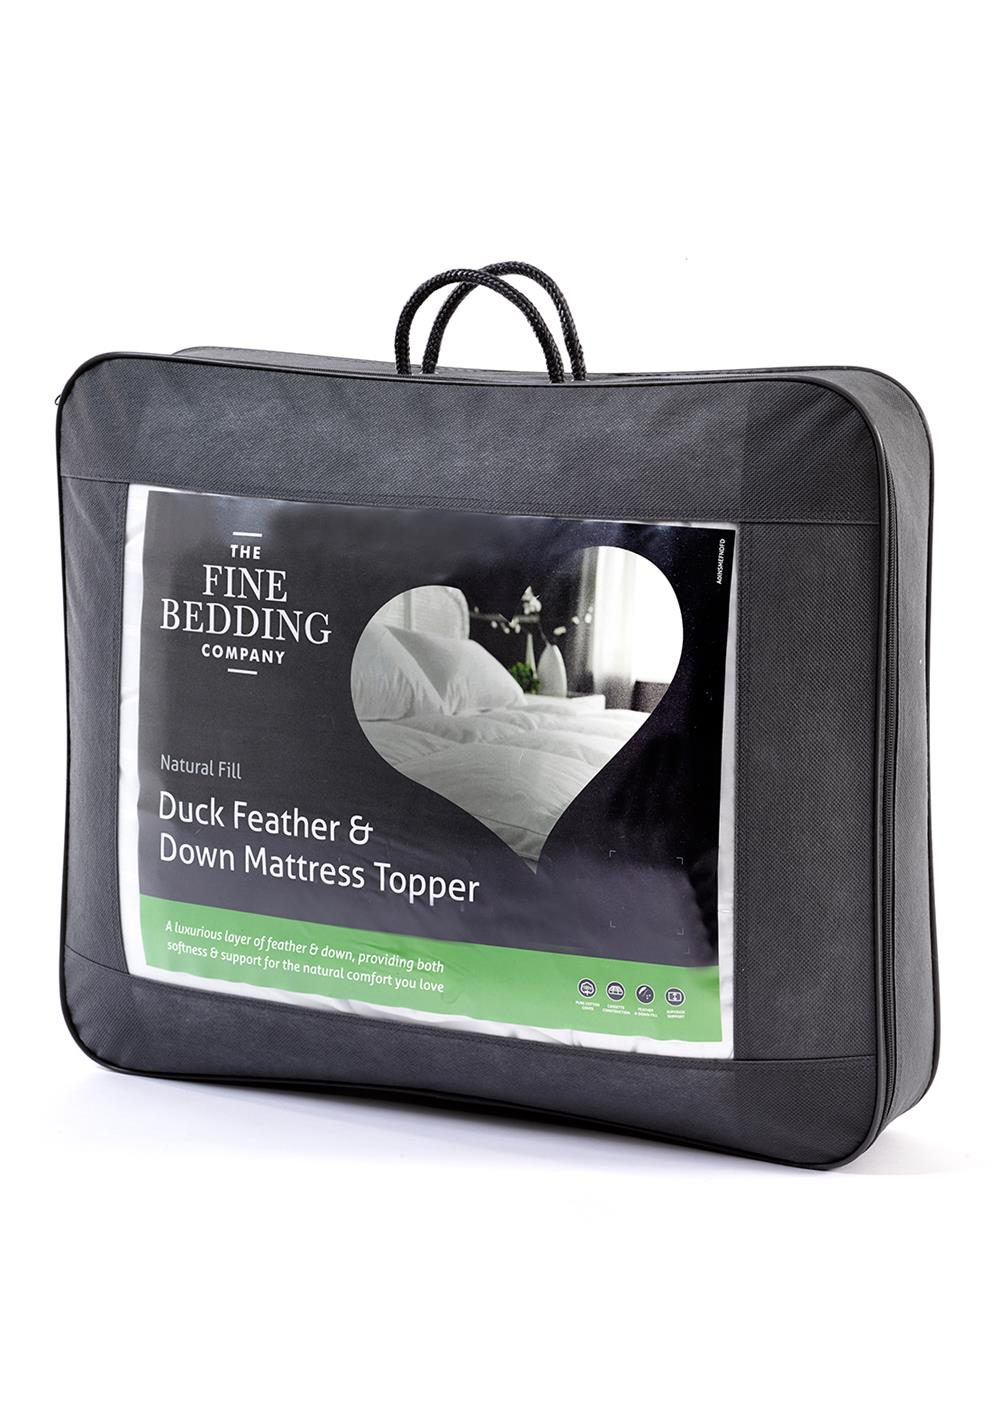 The Fine Bedding Company Duck Feather And Down Mattress Topper